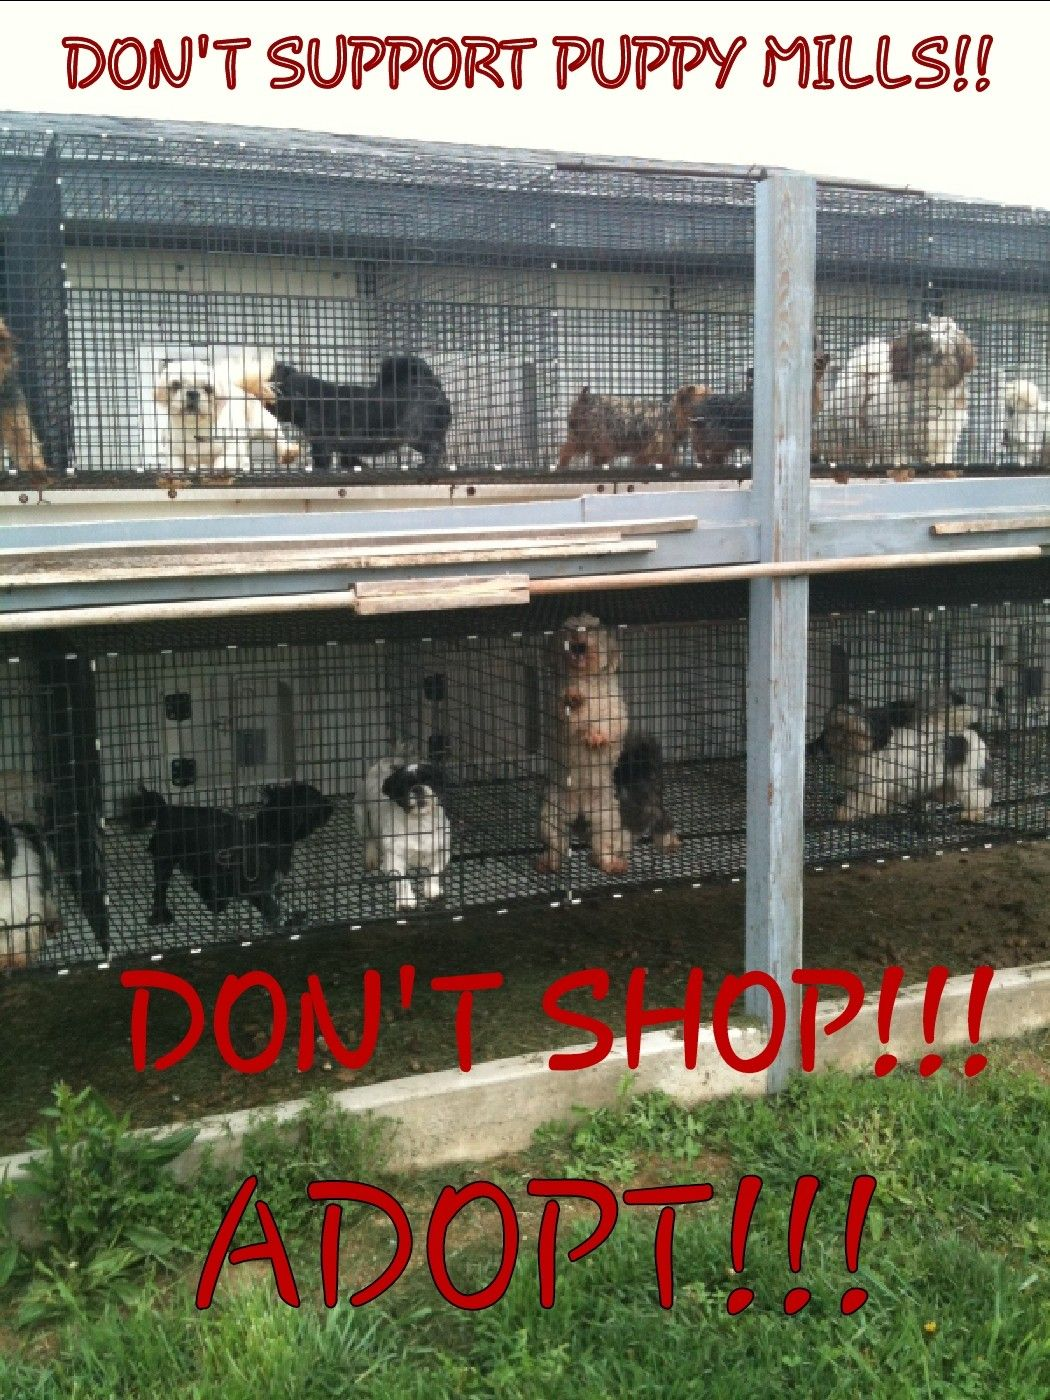 Please Adopt Take A Look In A Local Shelter And Find Your New Bff Puppy Mills Buy Puppies Puppies